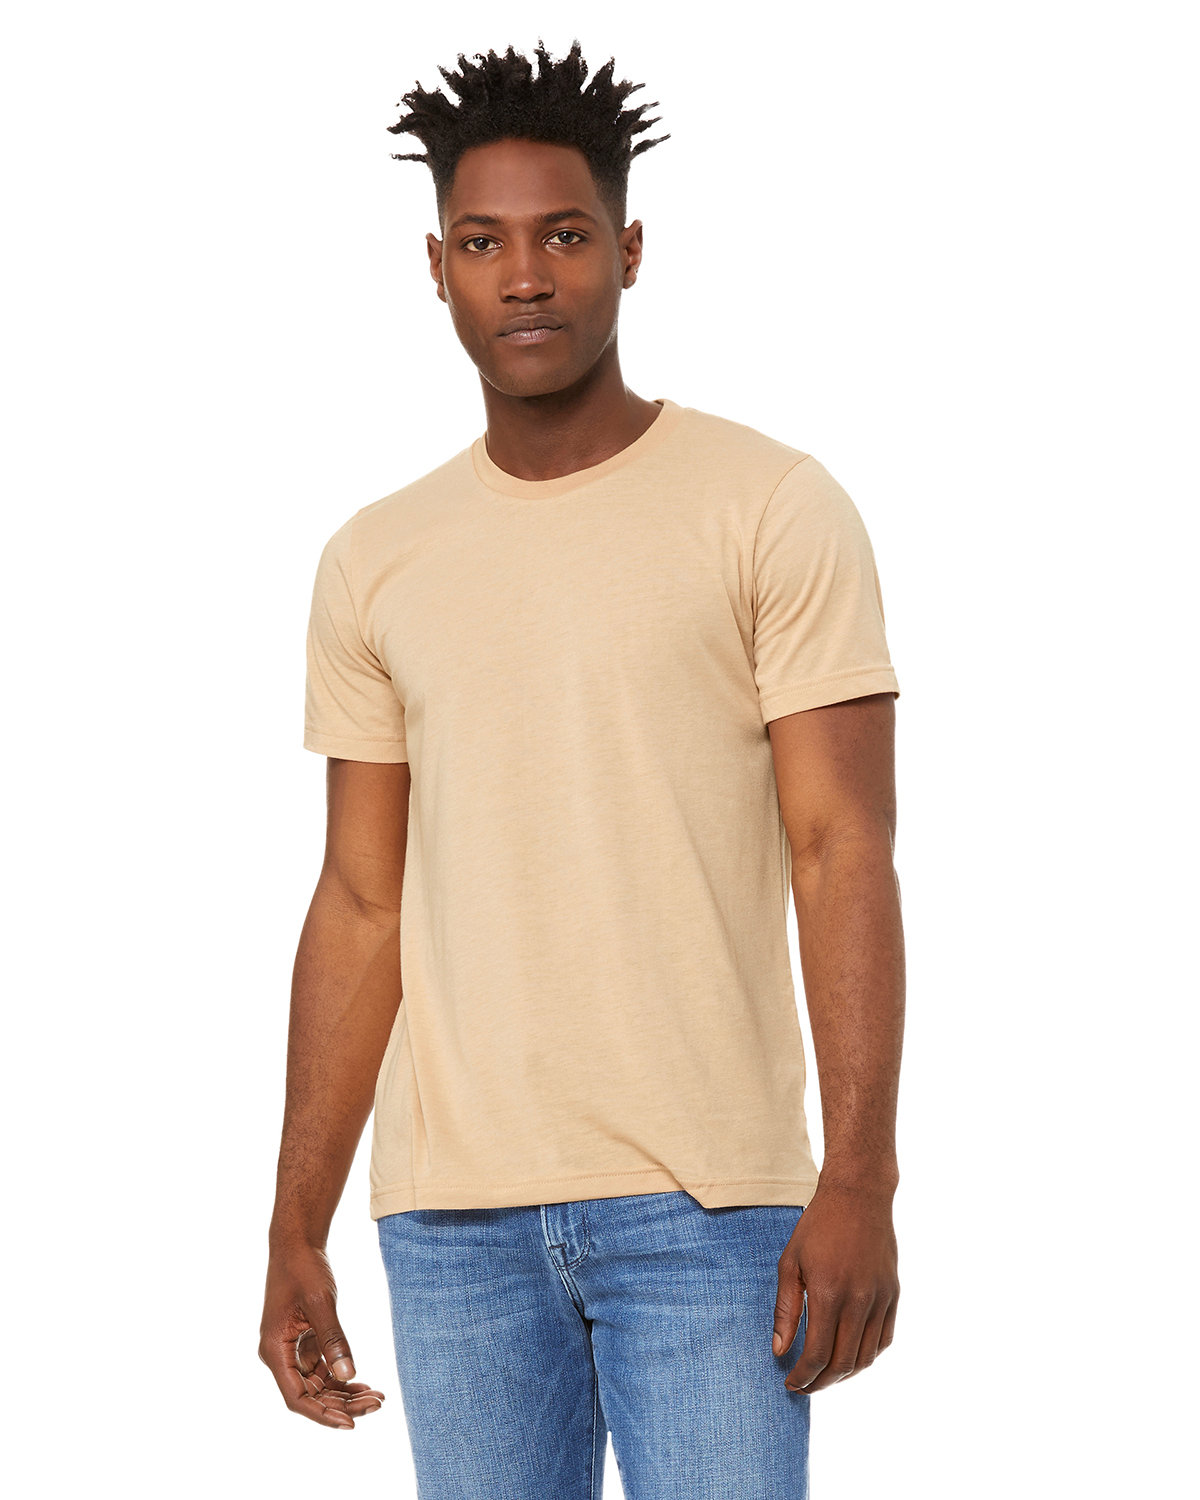 Bella + Canvas Unisex Heather CVC T-Shirt HEATHR SAND DUNE